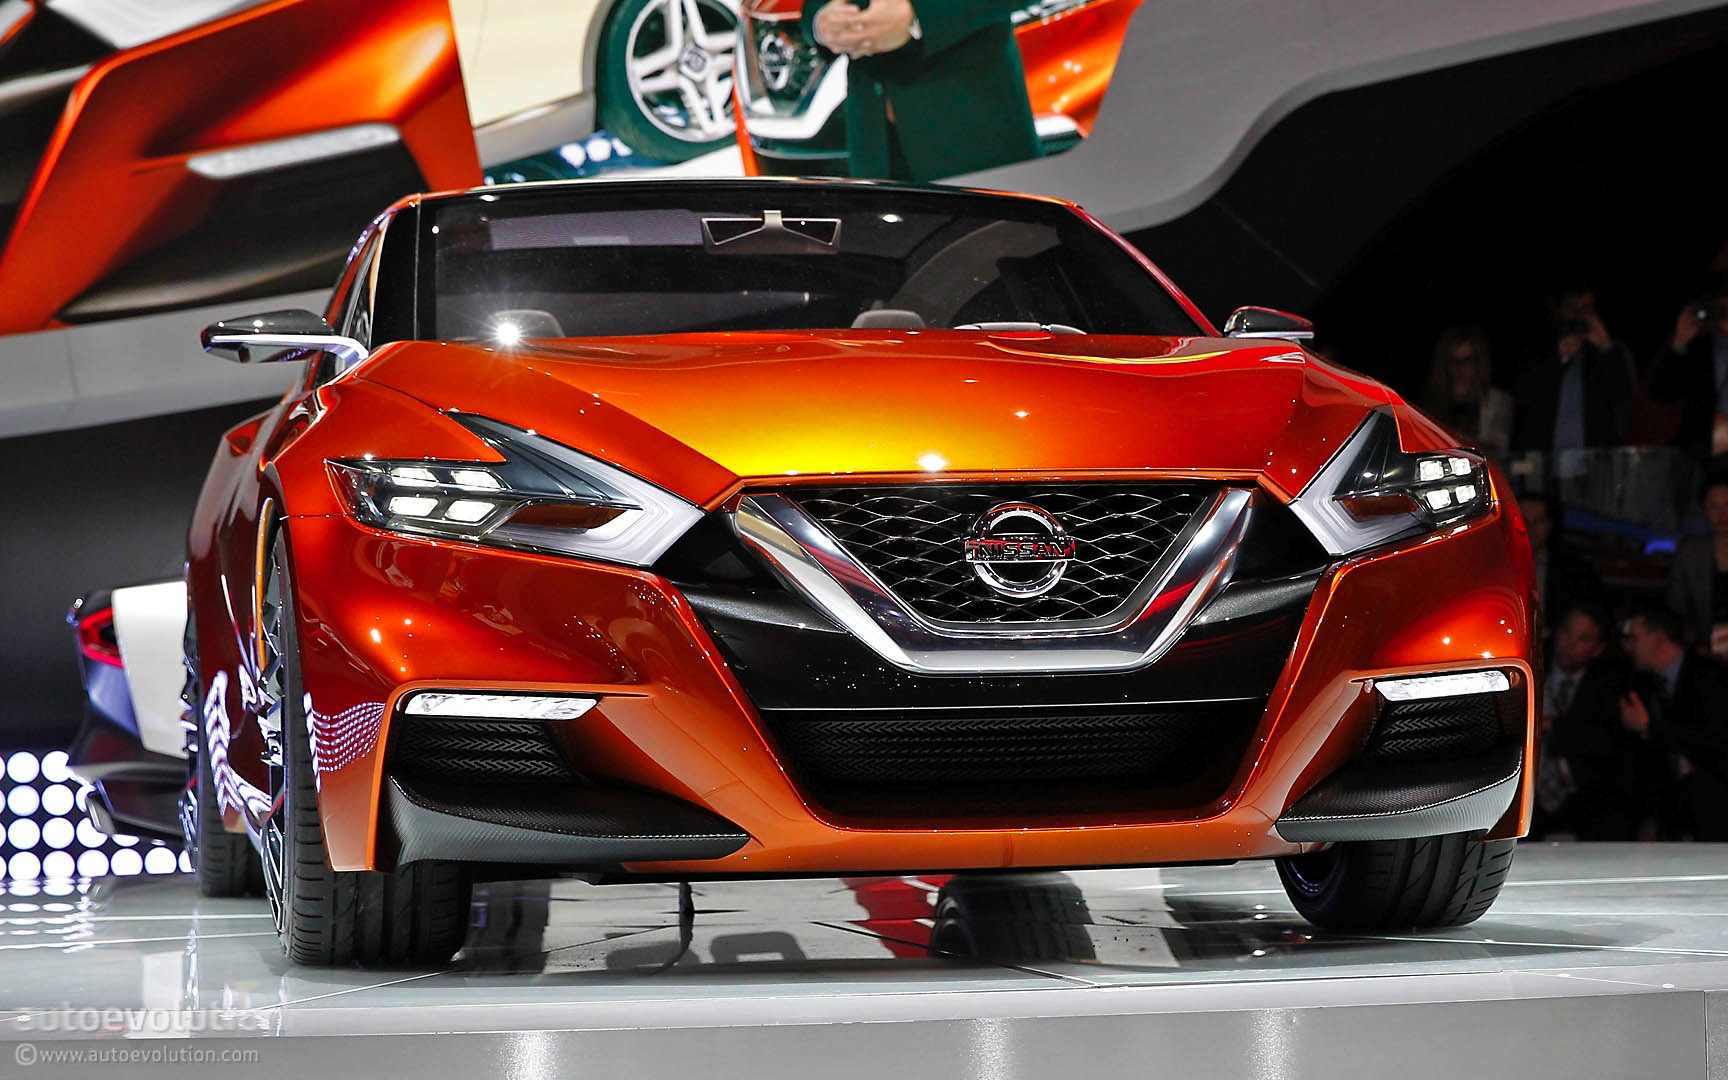 2014 nissan maxima redesign image collections hd cars wallpaper nissan sport sedan concept previews the 2016 maxima live photos 2014 nissan sport sedan concept vanachro vanachro Images